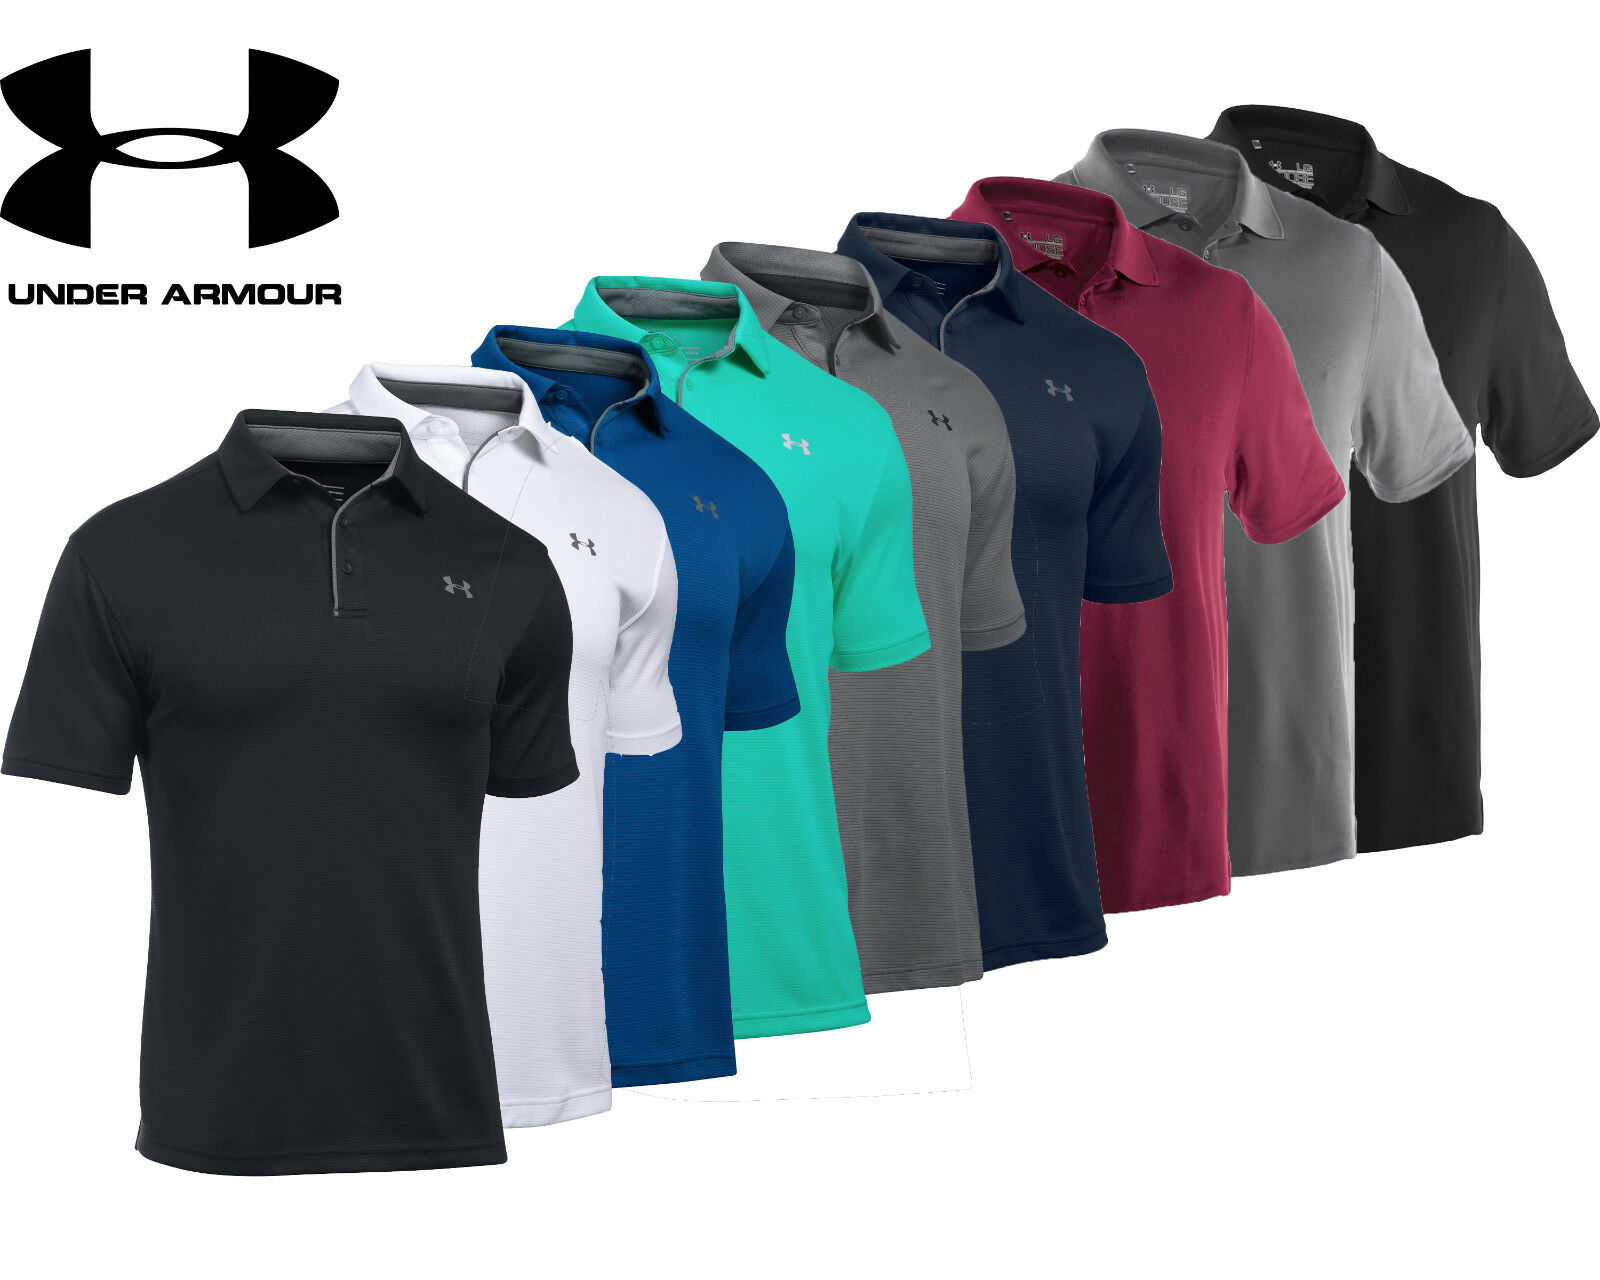 Herren Under Armour Polo Shirt Team Performance Polo New Authentic